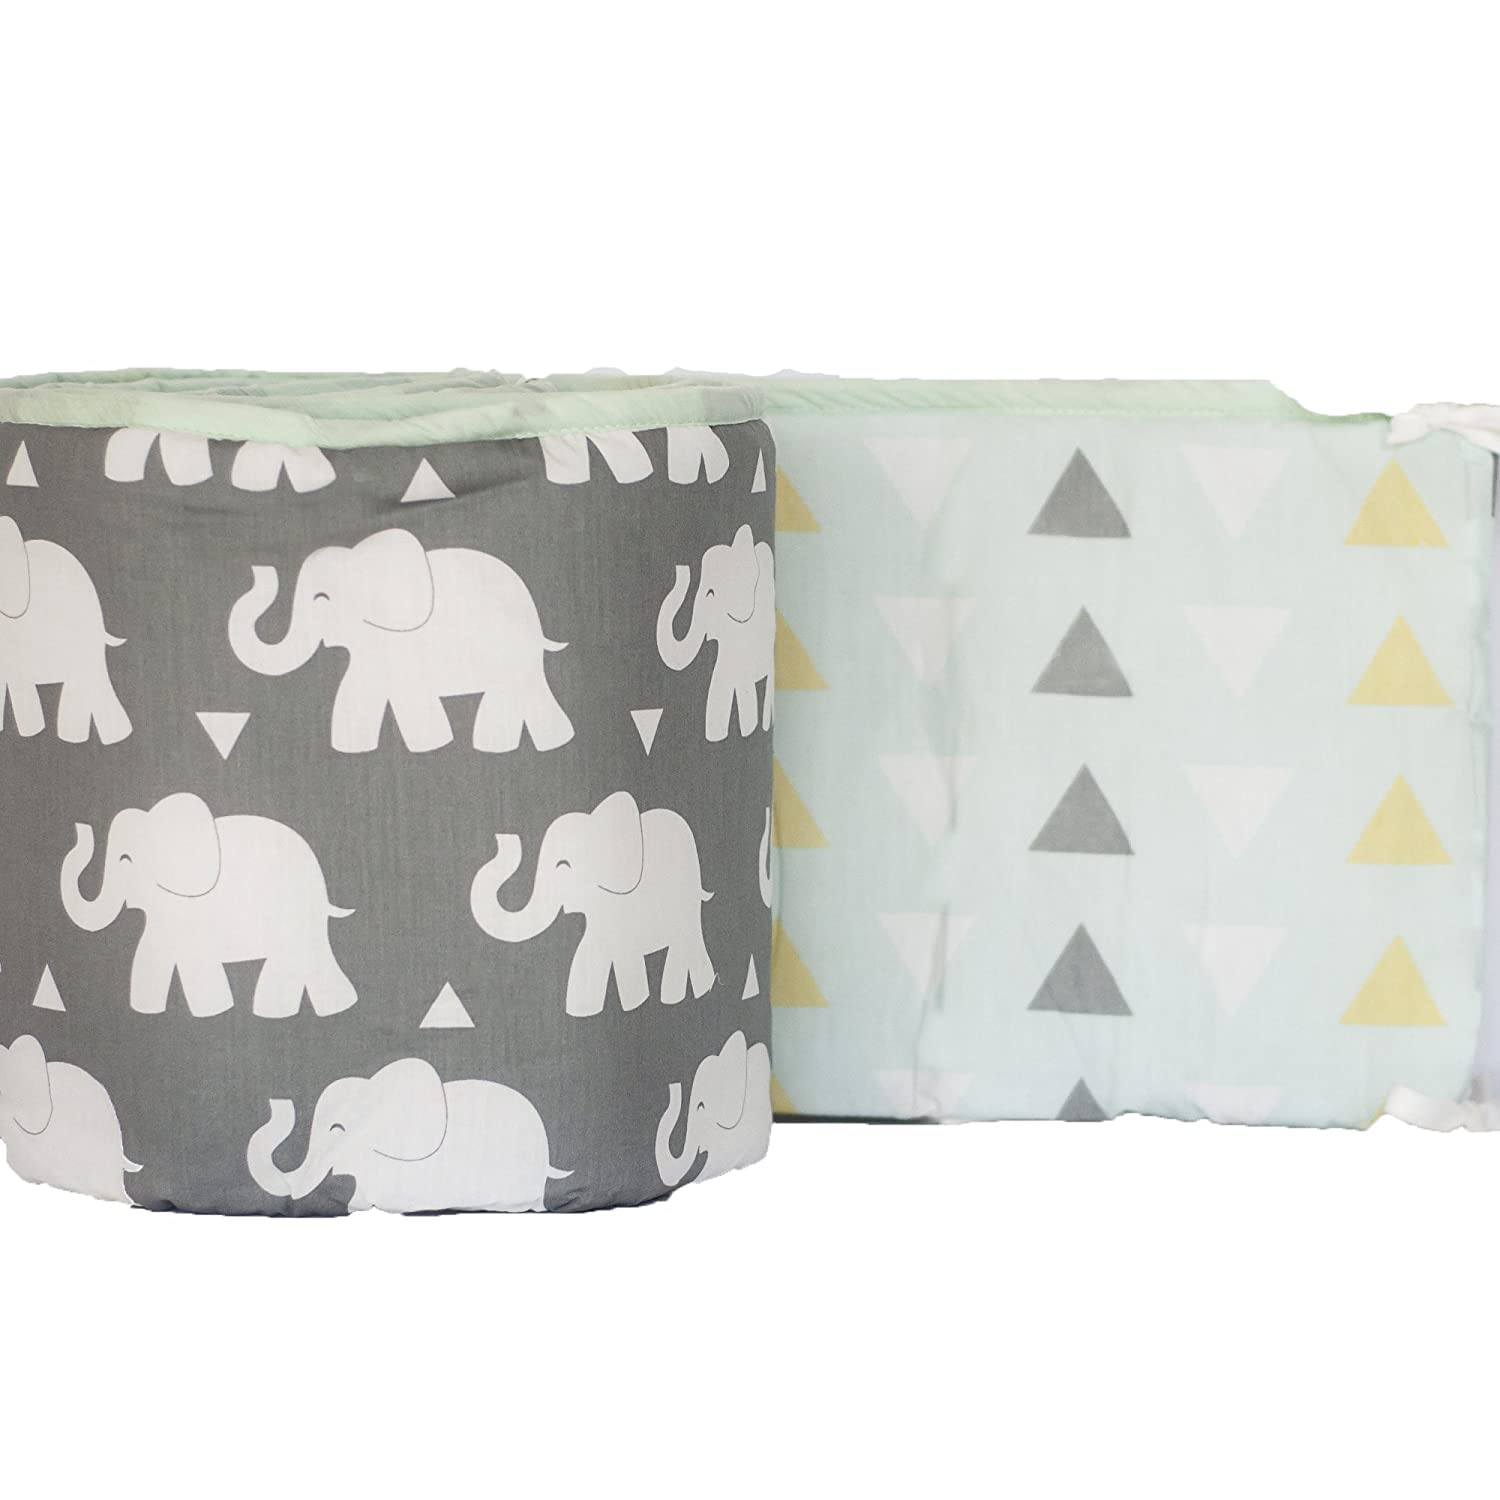 Pam Grace Creations Indie Elephant Crib Bumper, Grey/White/Mint BP-ELEPHANT